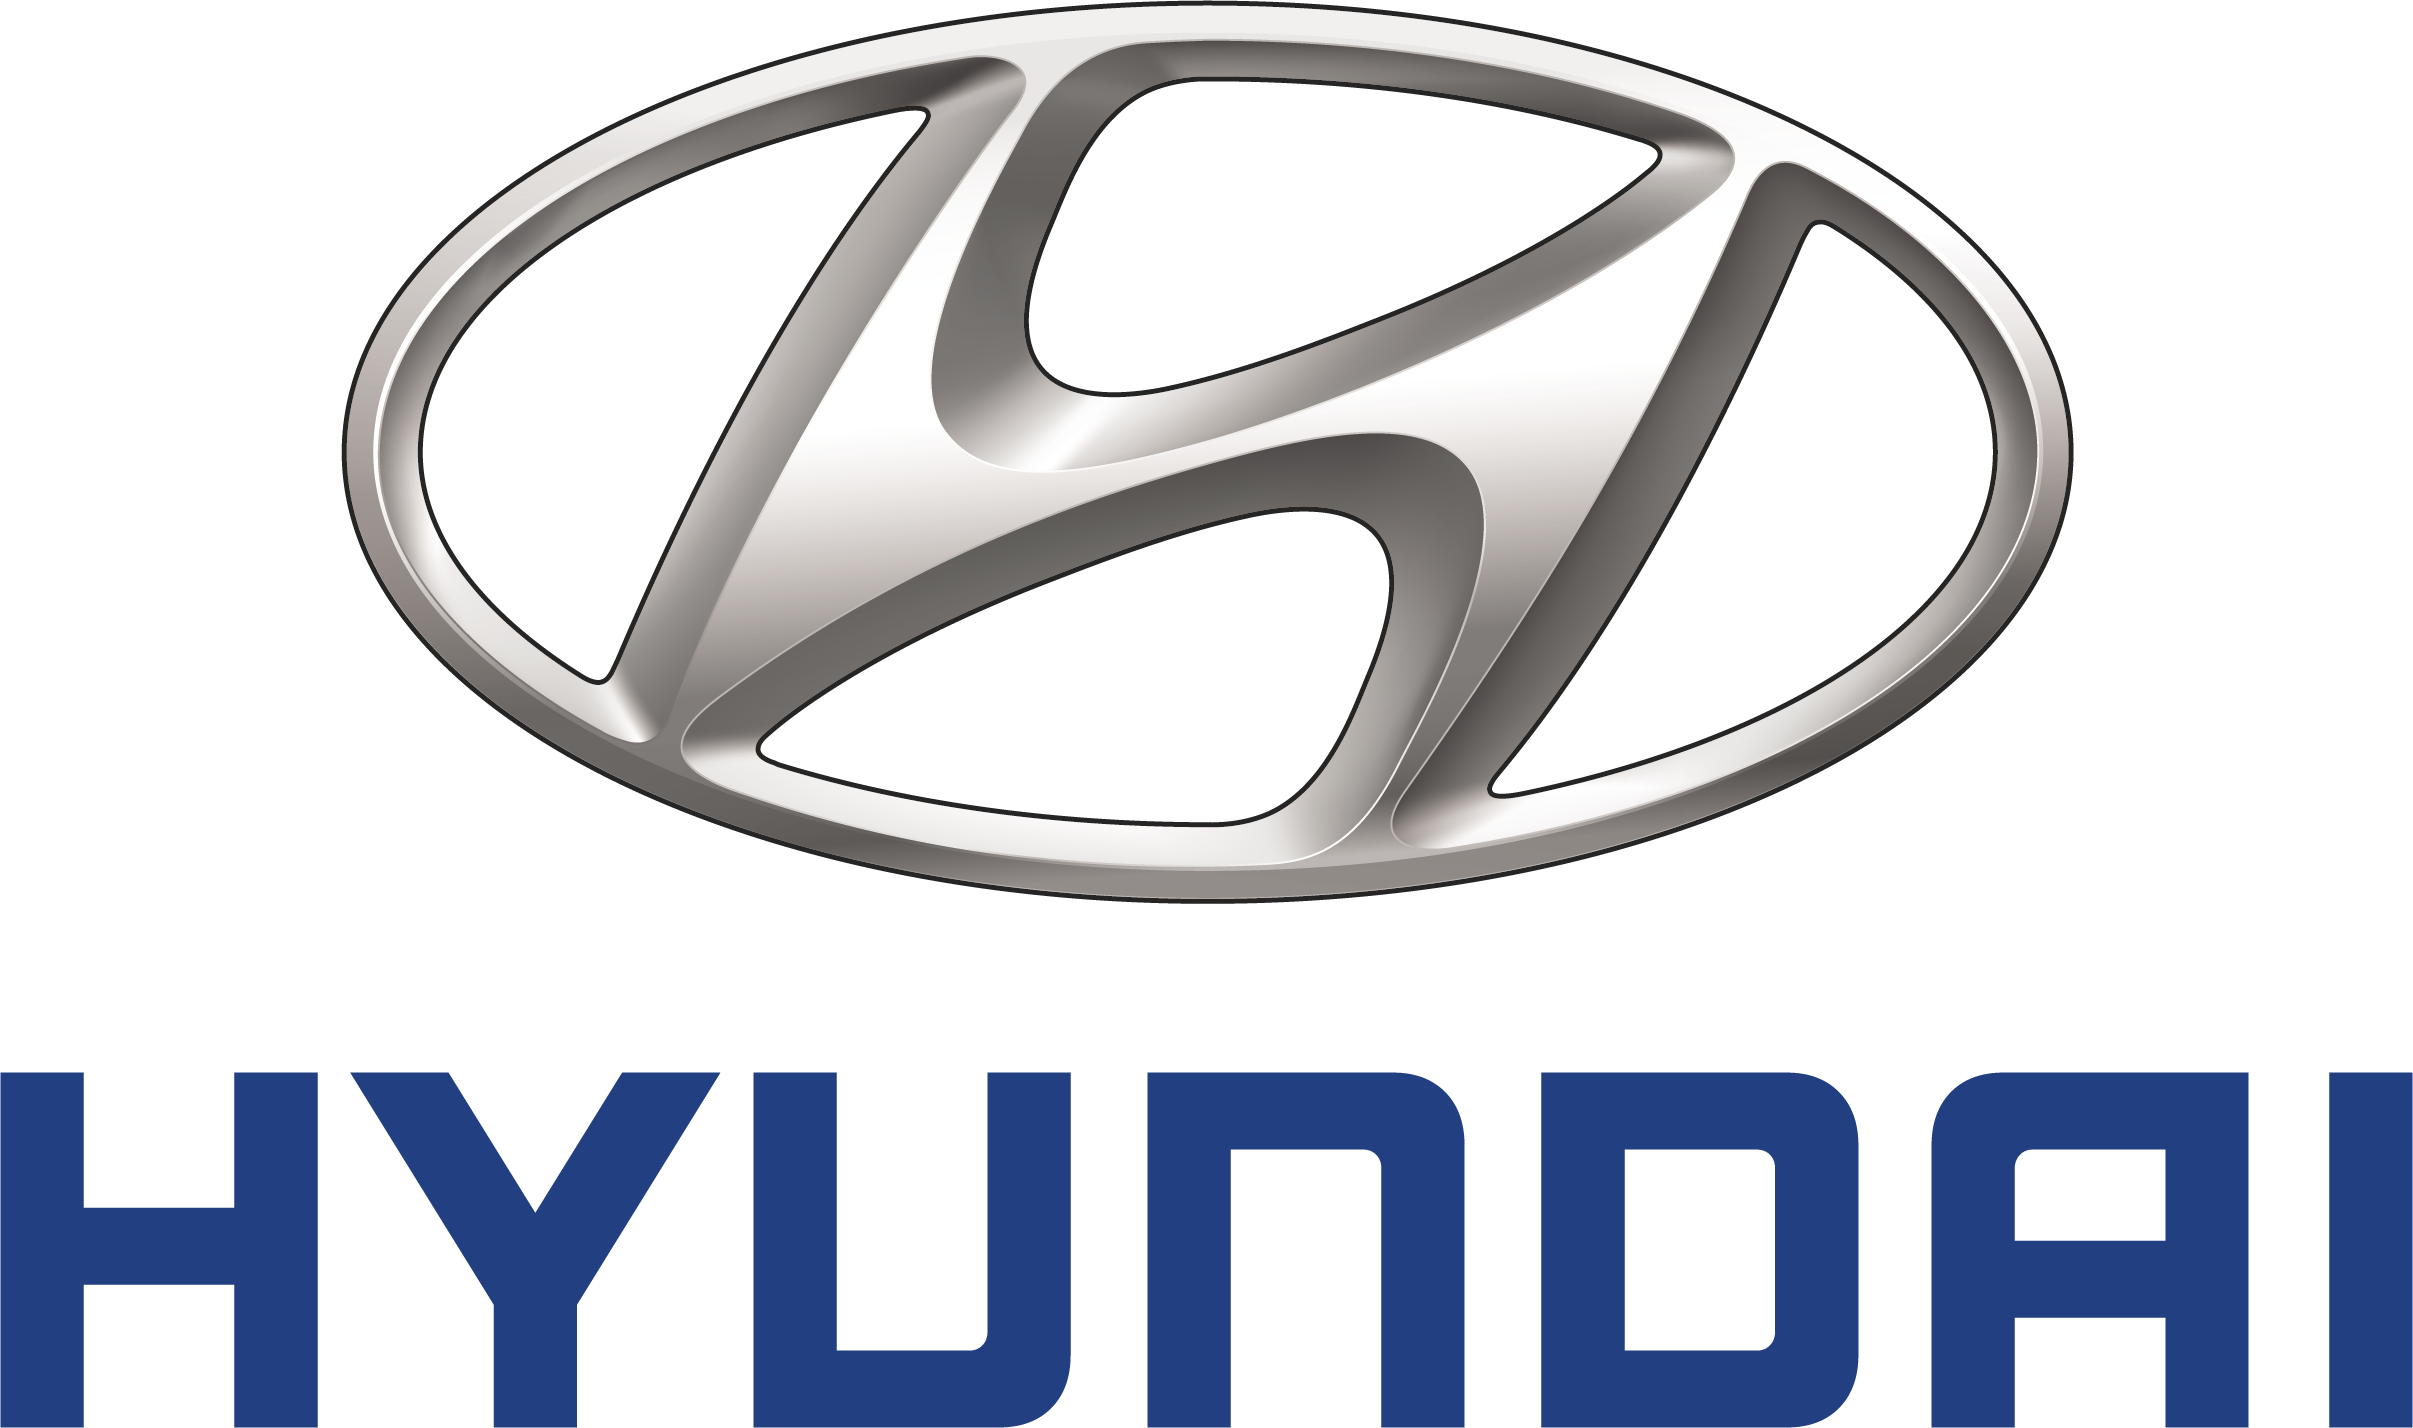 hyundai leading the way in the global car industry